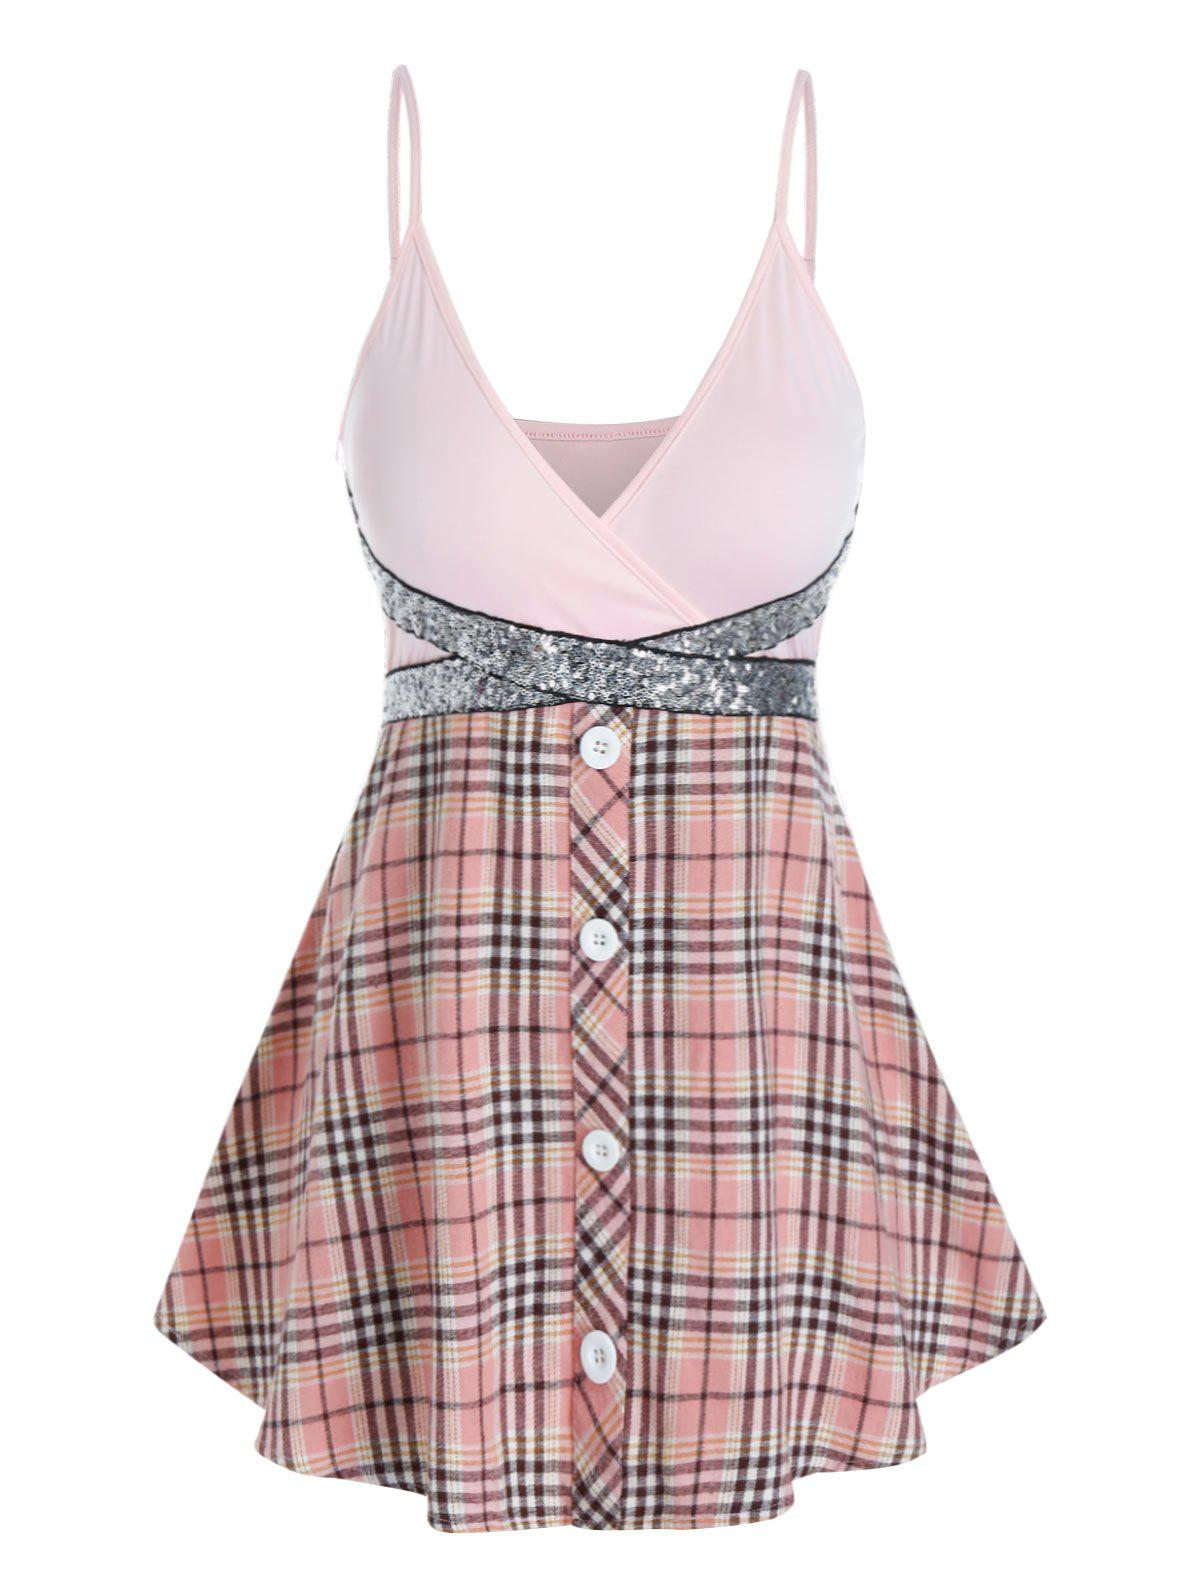 Plus Size Glitter Sequined Plaid Surplice Cami Top - PINK 5X